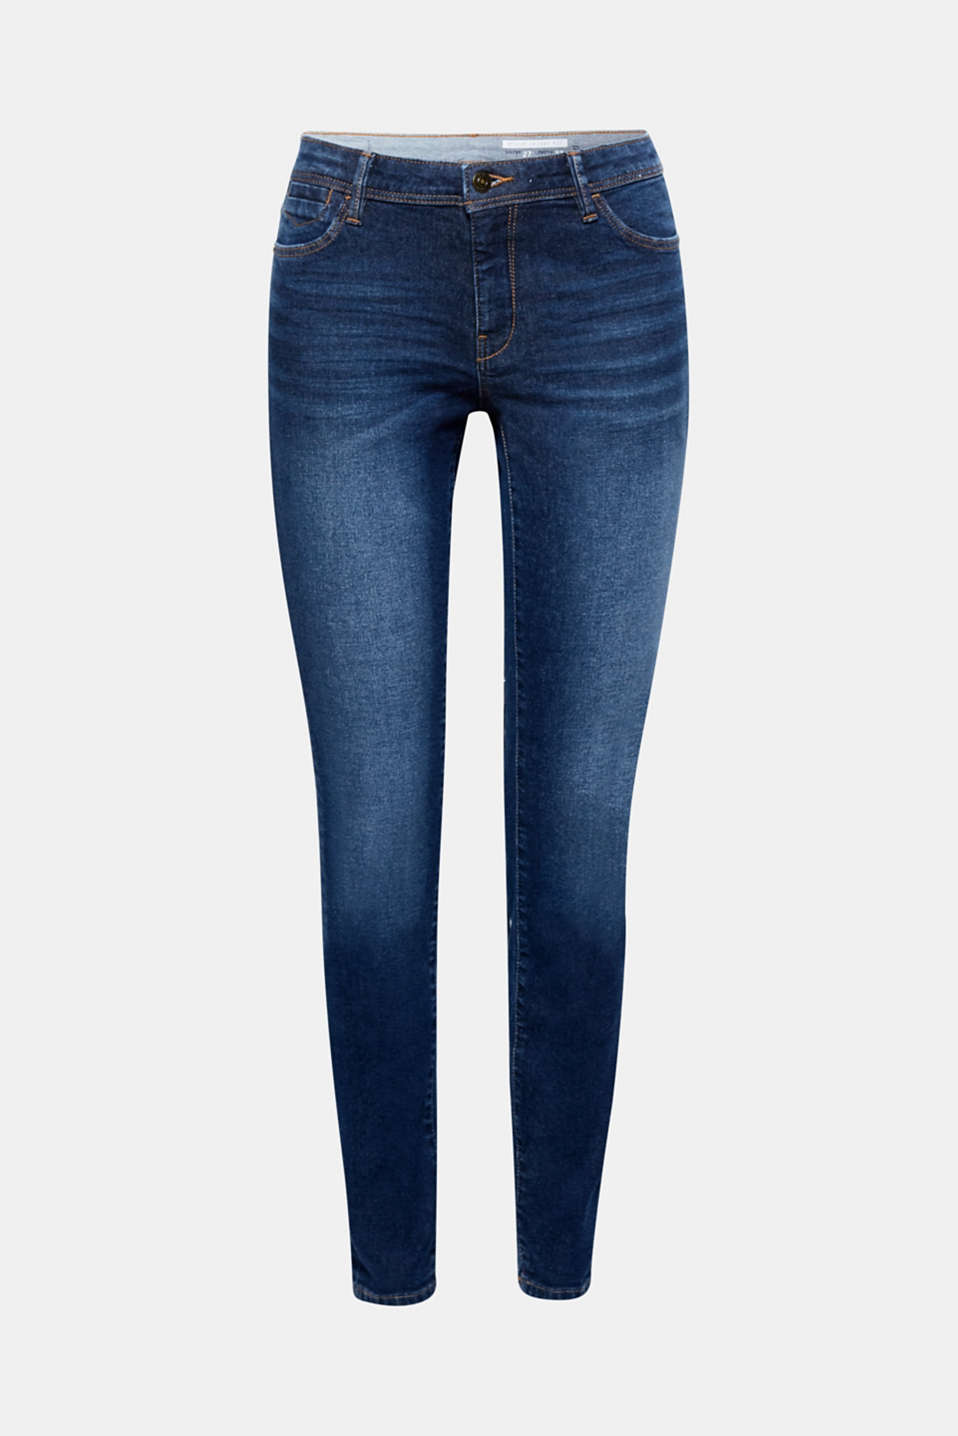 Create a beautiful silhouette and are available in many different garment-washed effects: skinny stretch denim jeans!